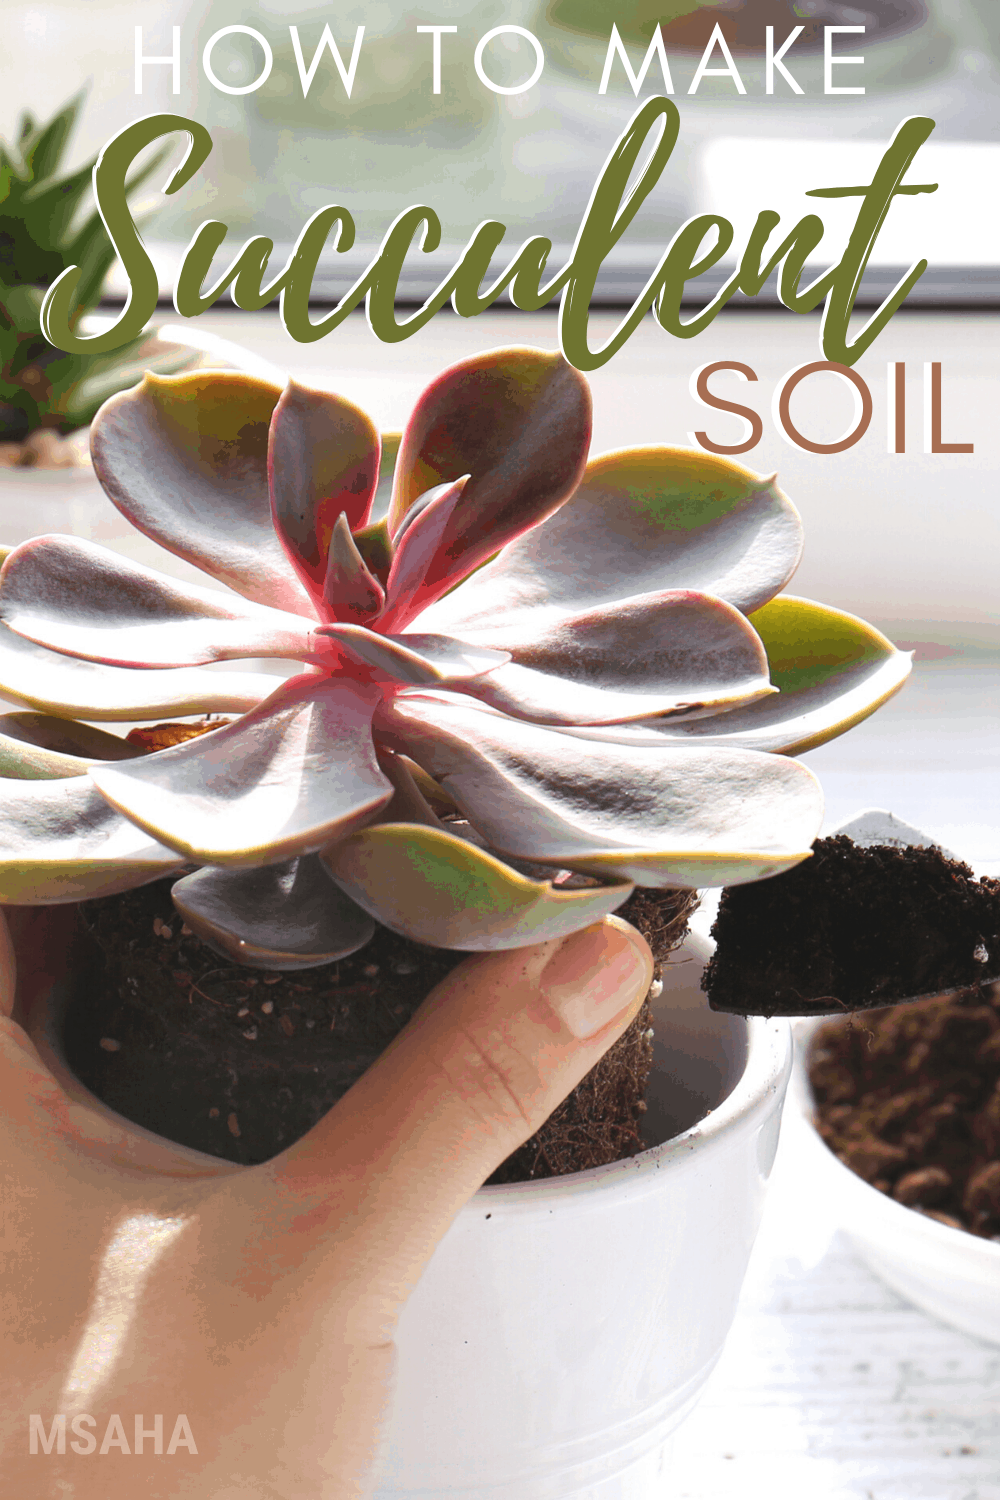 You are going to learn about succulent soil. Why the type of soil you use for your succulent is essential and how to make your own succulent soil. #Succulent #gardening #soil via @mystayathome